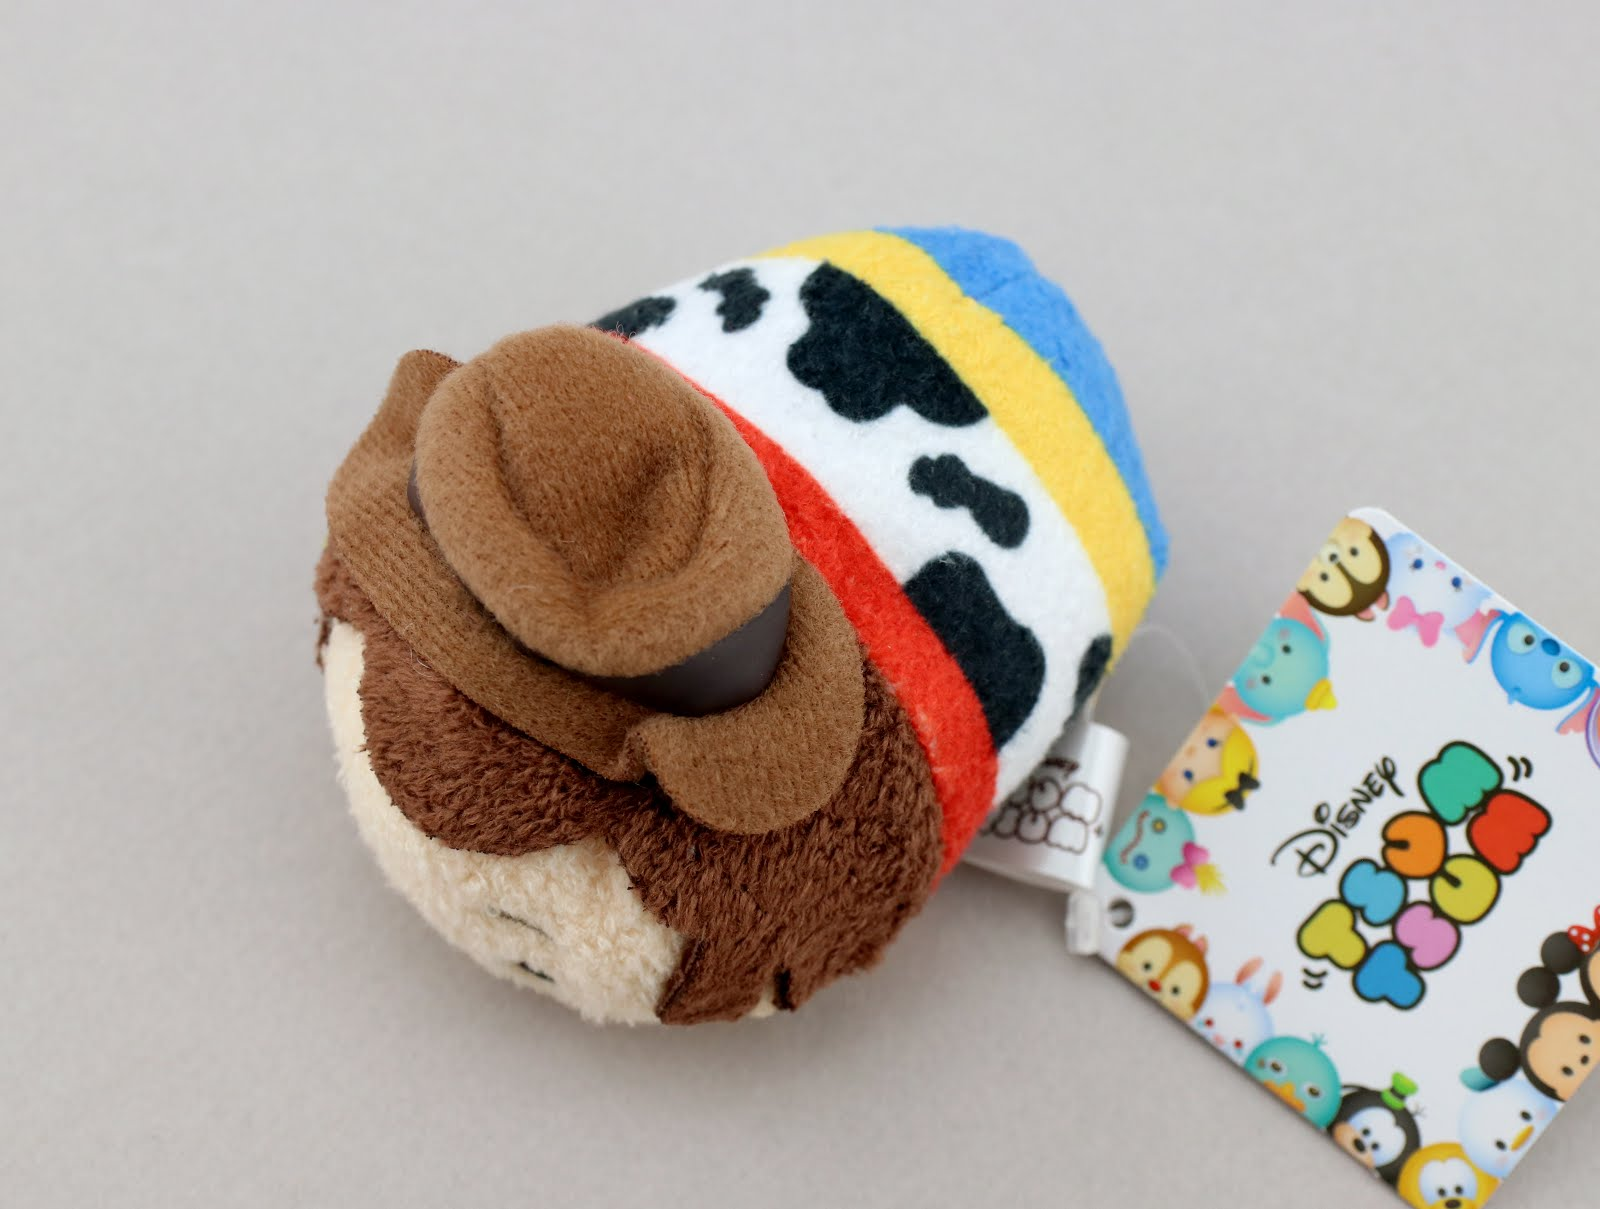 toy story 4 tsum tsums woody